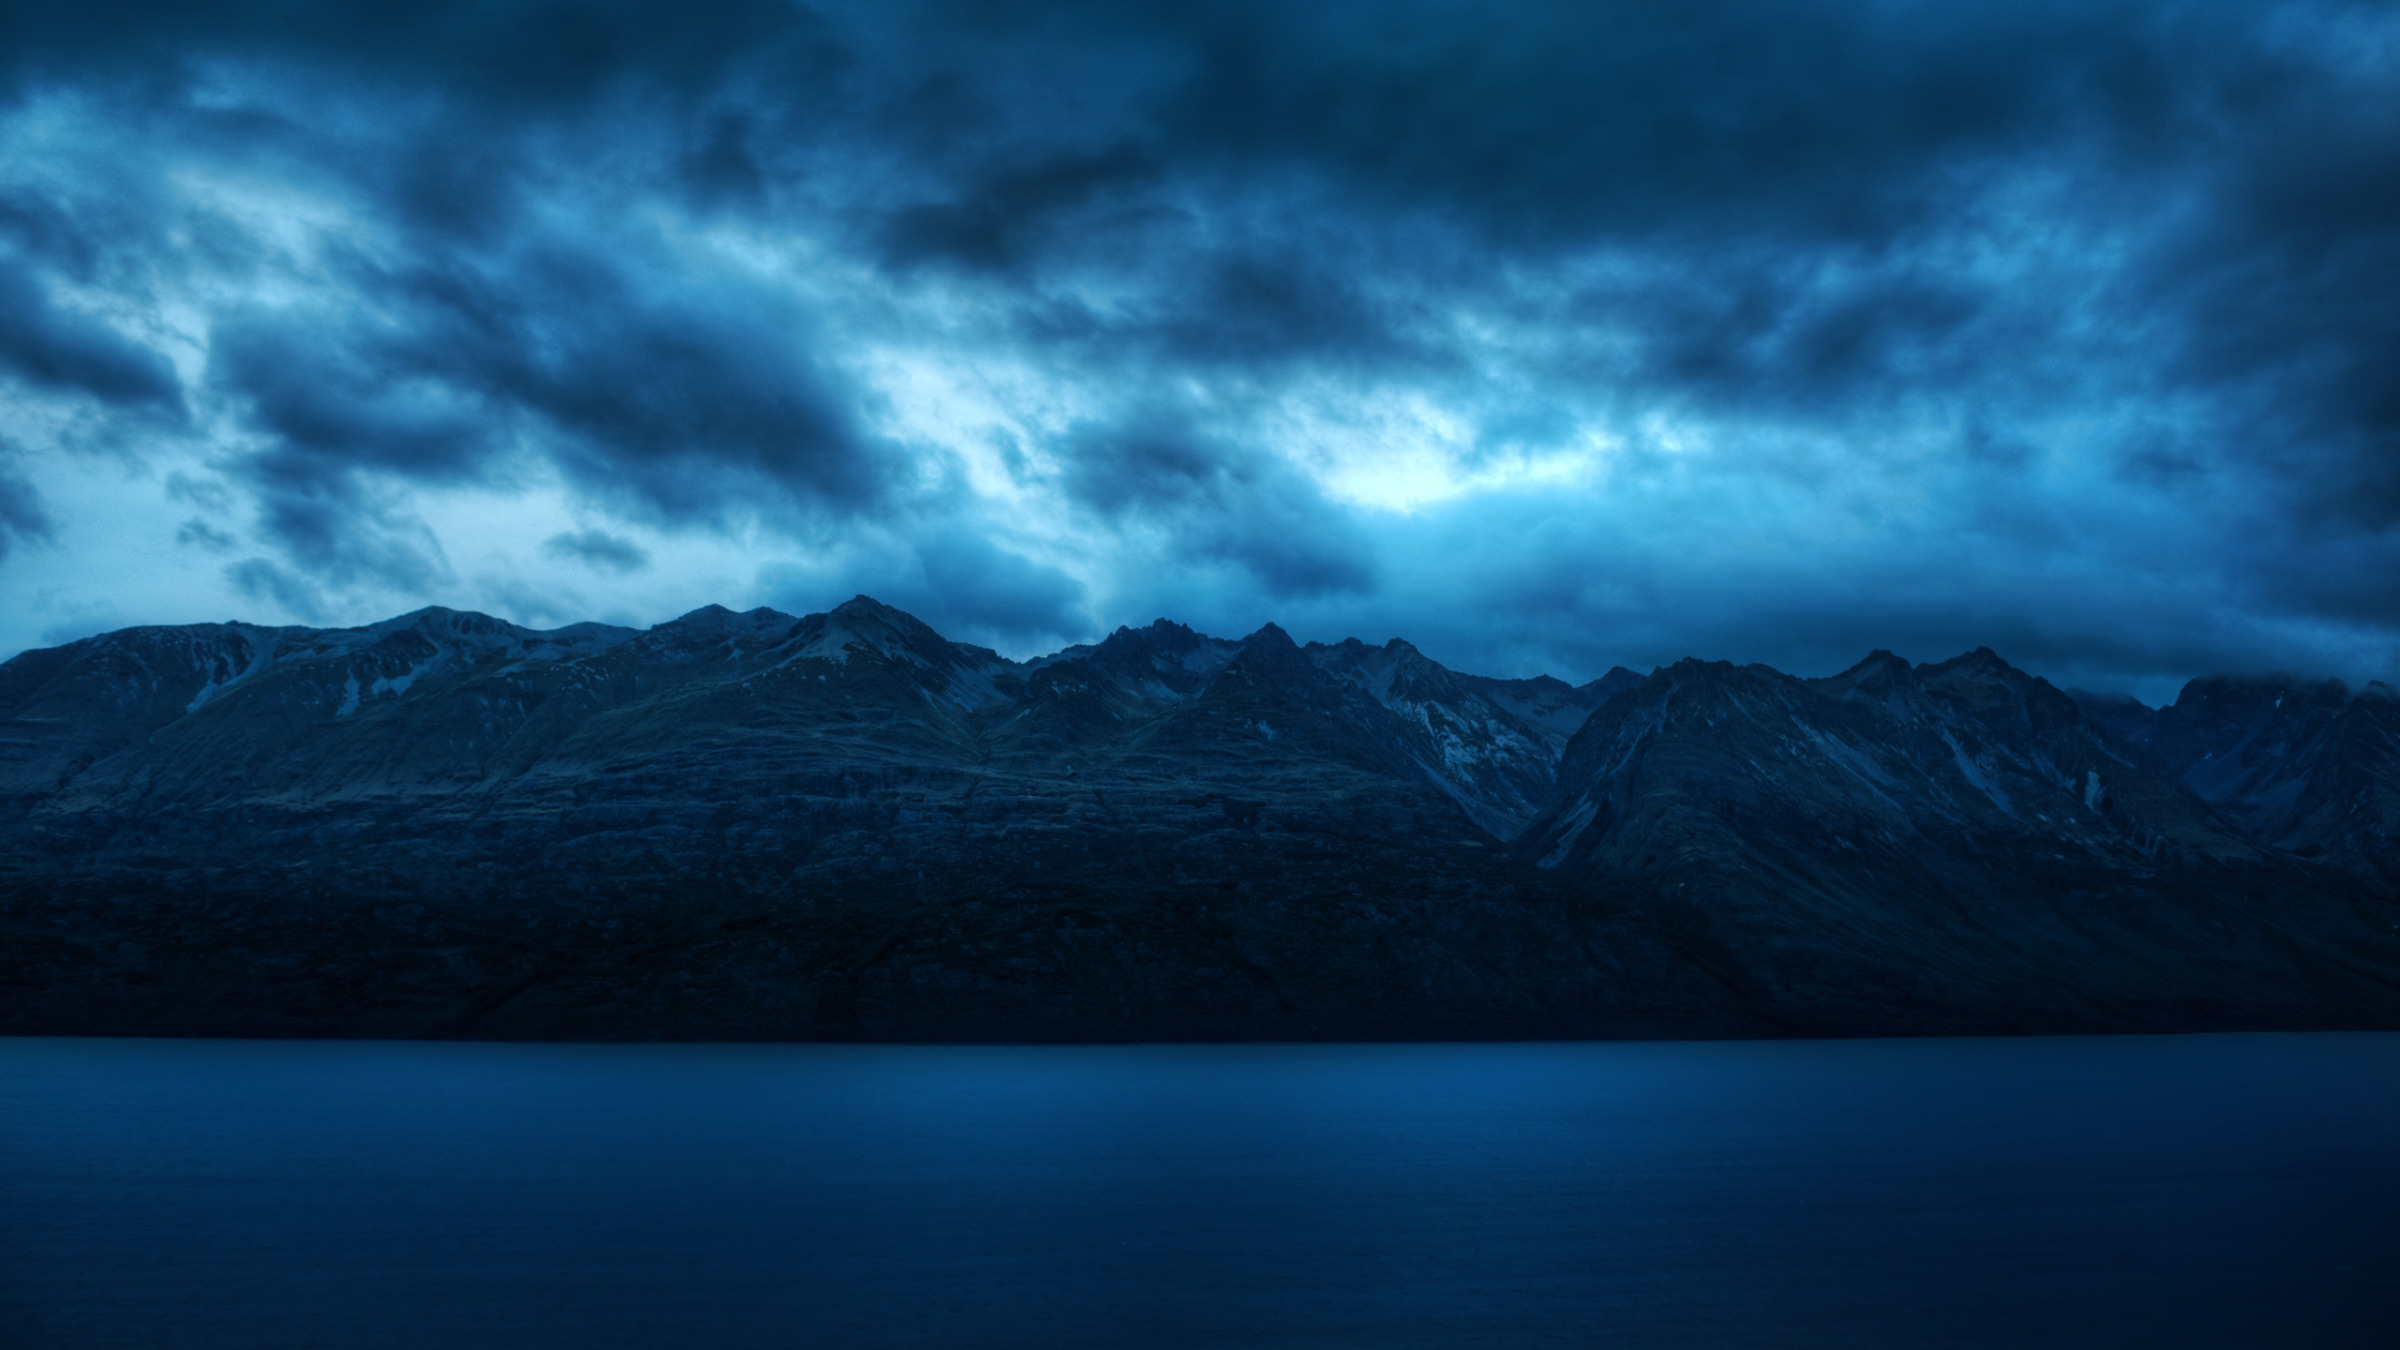 Wallpaper's Collection: «Storm Wallpapers»